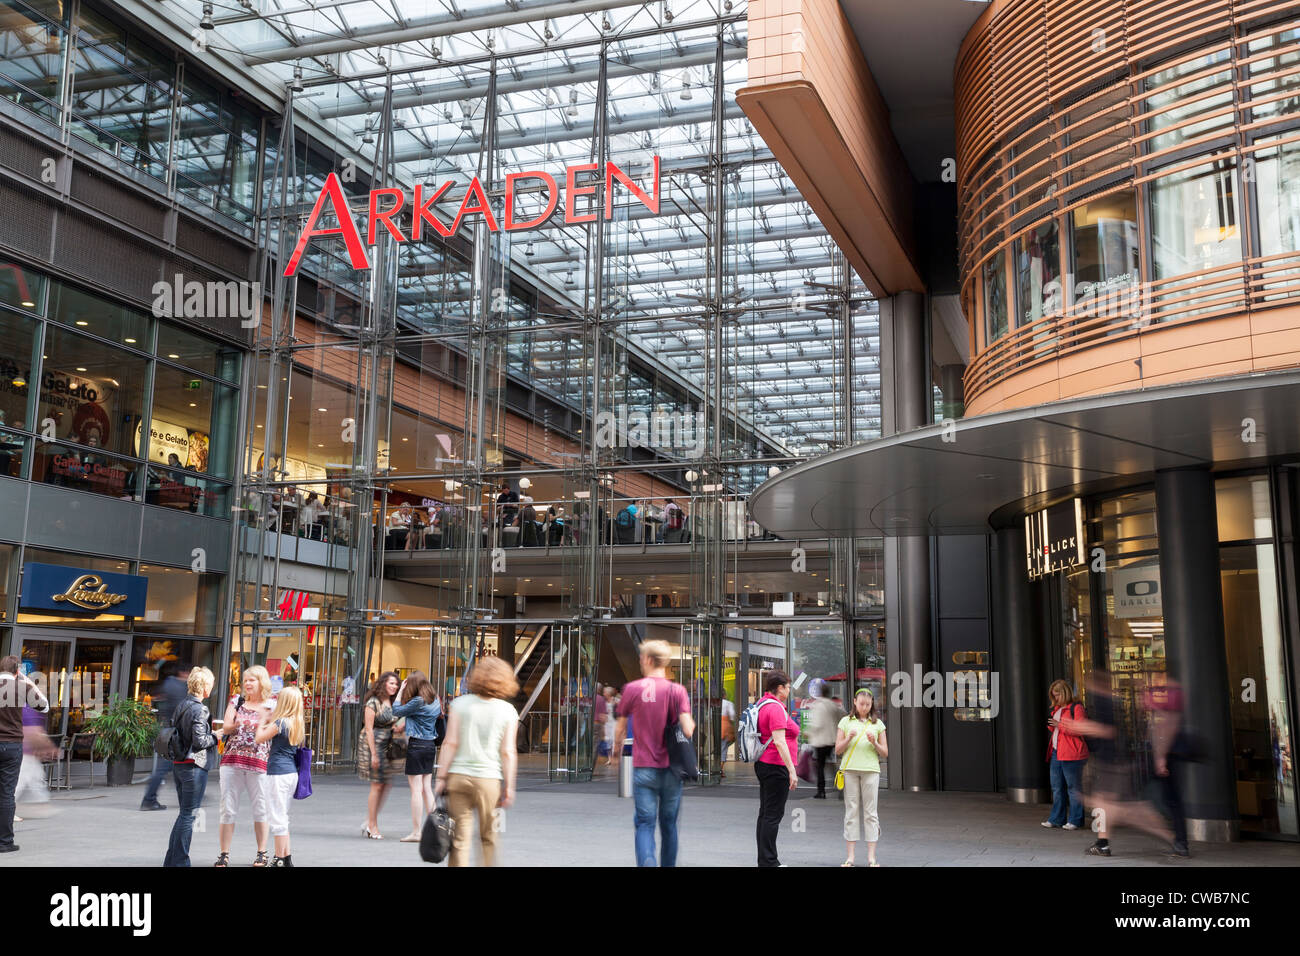 potsdamer platz arkaden shopping center berlin germany stock photo 50034696 alamy. Black Bedroom Furniture Sets. Home Design Ideas